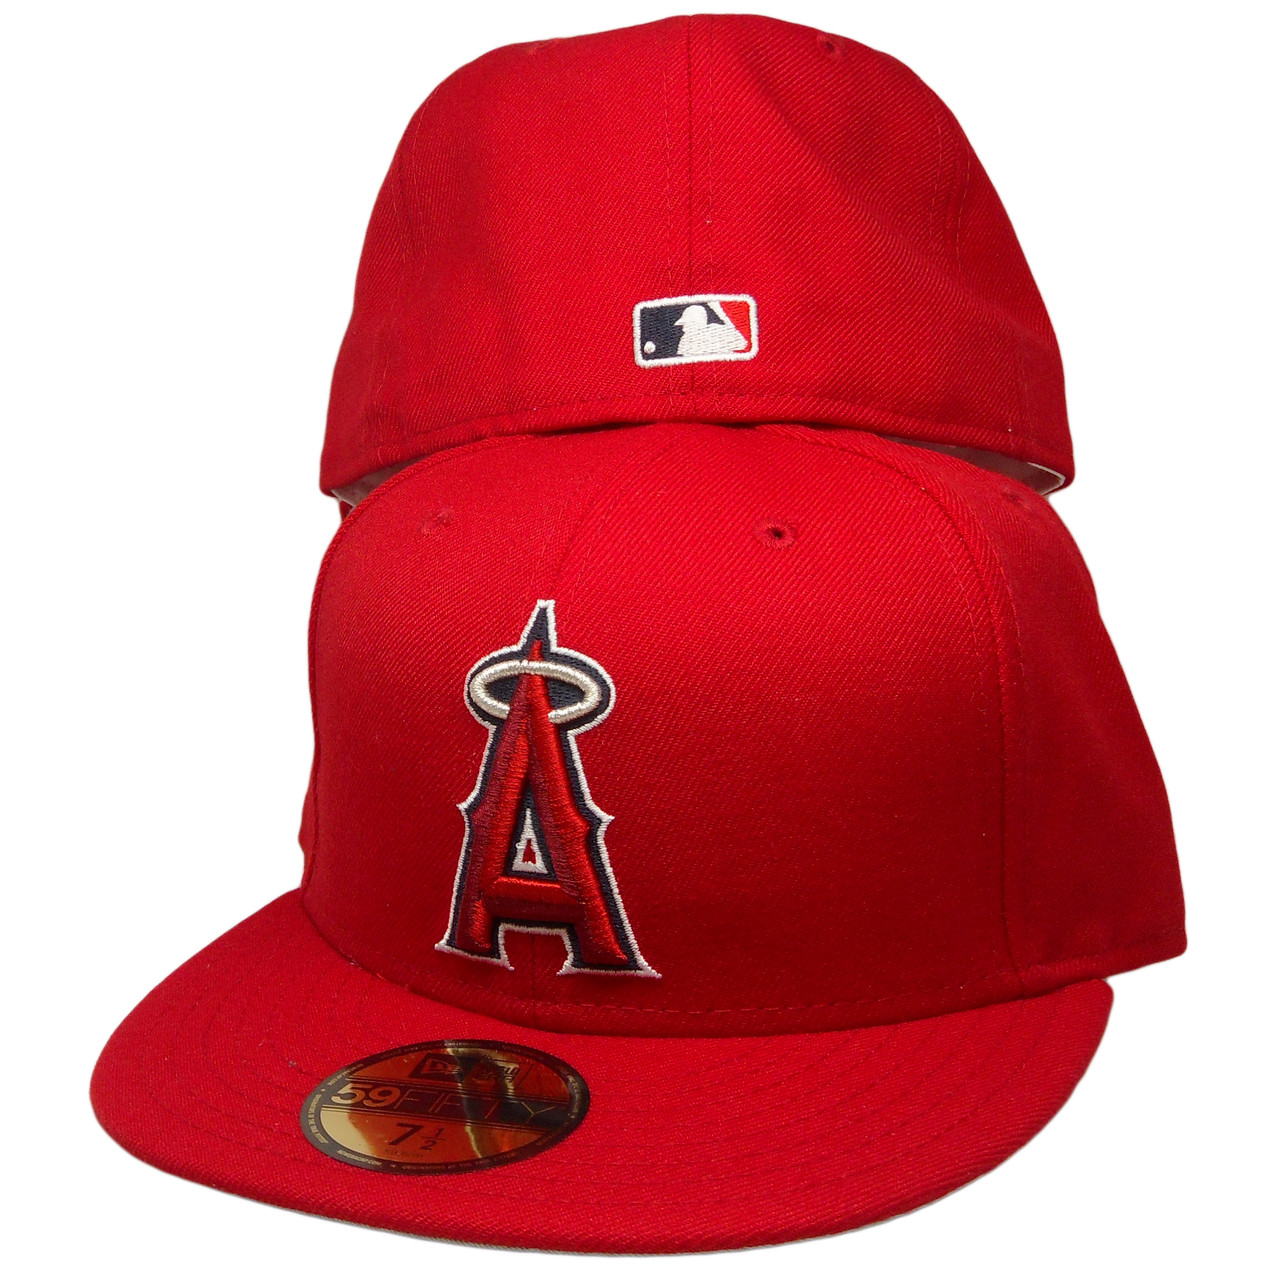 8ba2eb9283385 Anaheim Angels New Era Custom 59Fifty Fitted Hat - Red, Silver, Navy, White